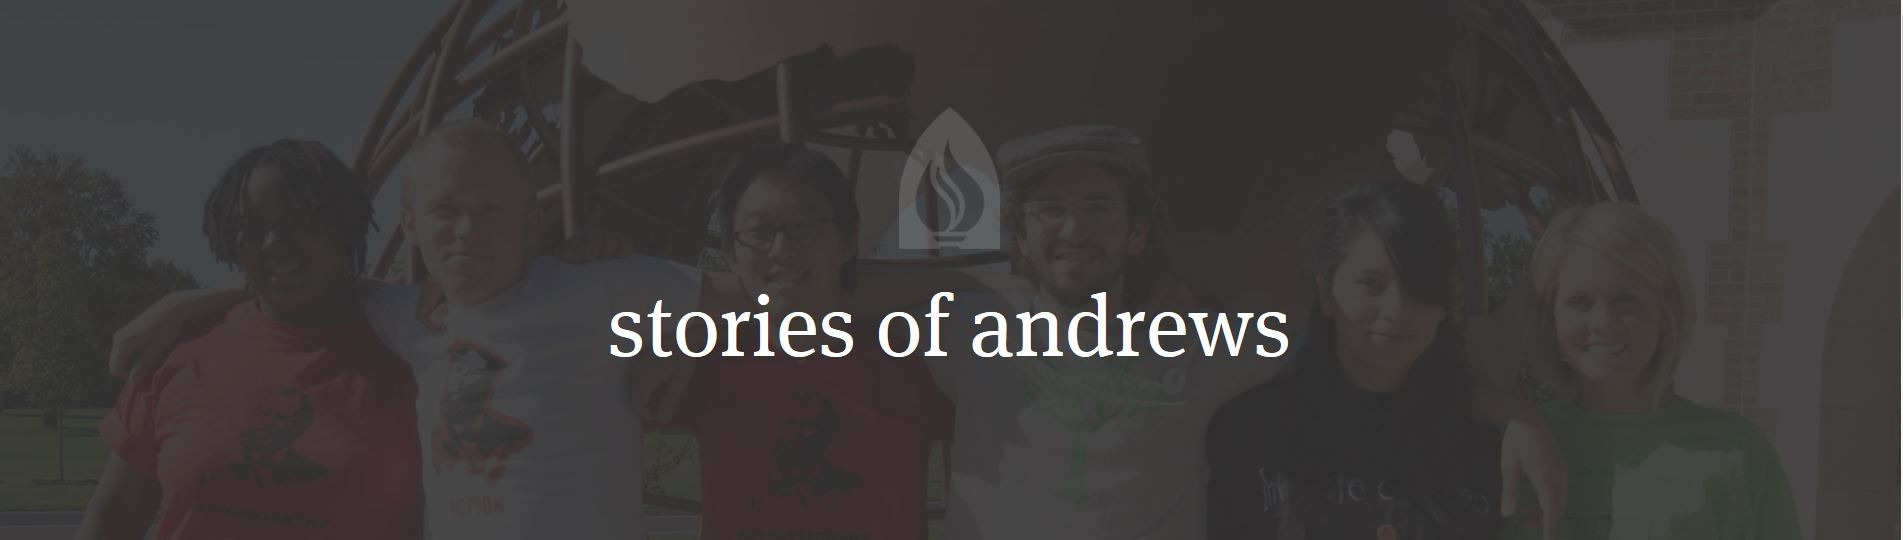 stories of andrews